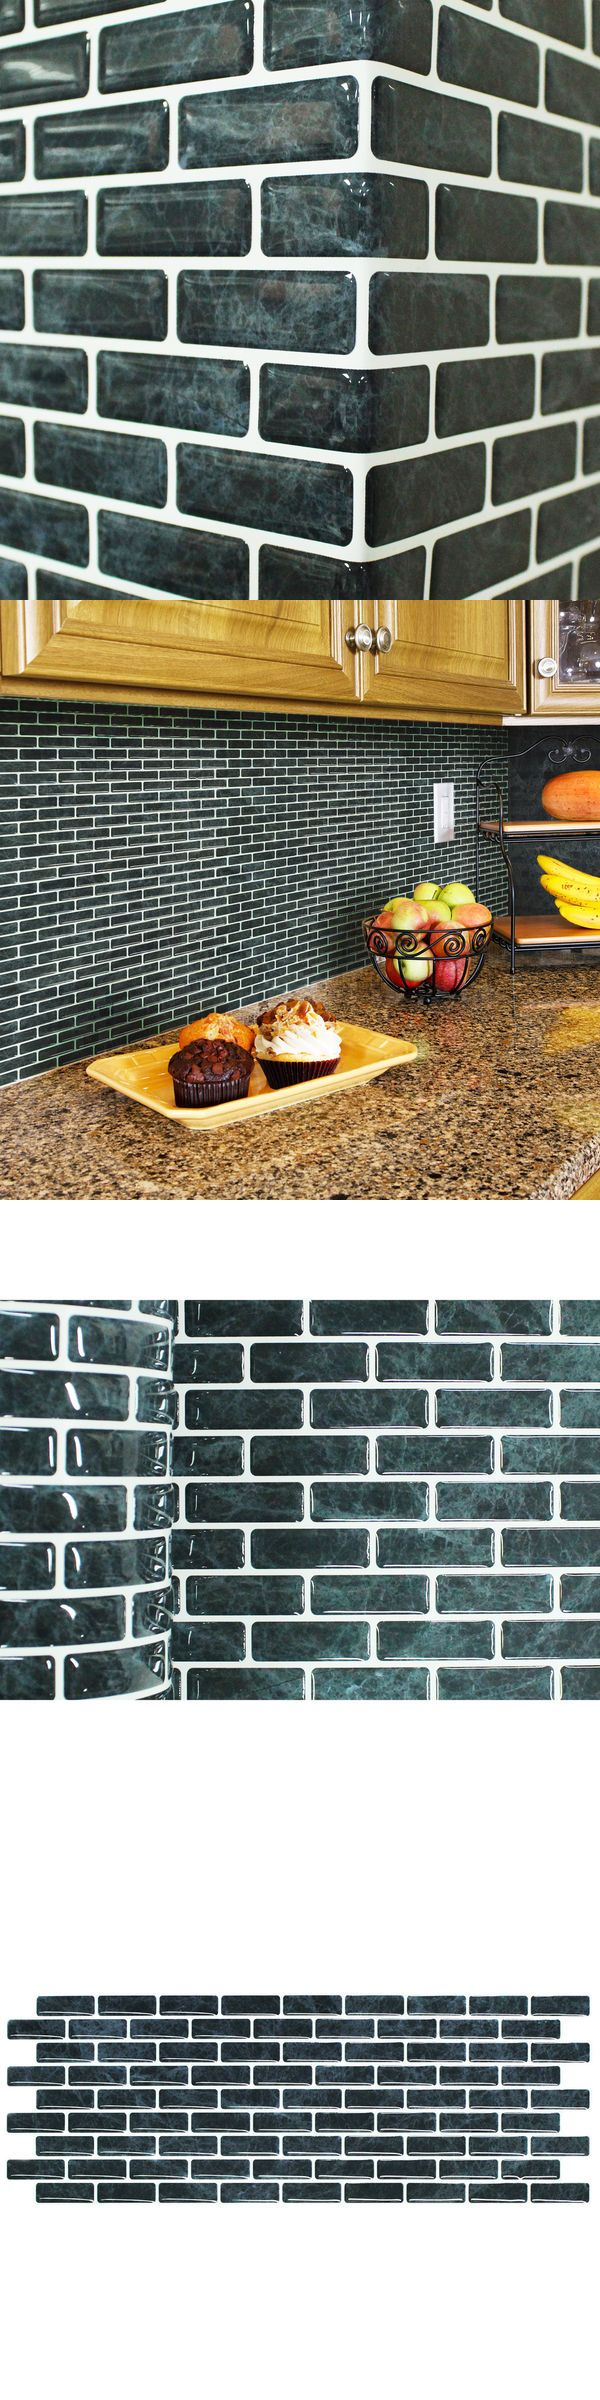 Floor and Wall Tiles 45800: Self Adhesive Wall Tiles Peel And Stick Backsplash Kitchen Black Wallpaper 4Pc -> BUY IT NOW ONLY: $38.92 on eBay!